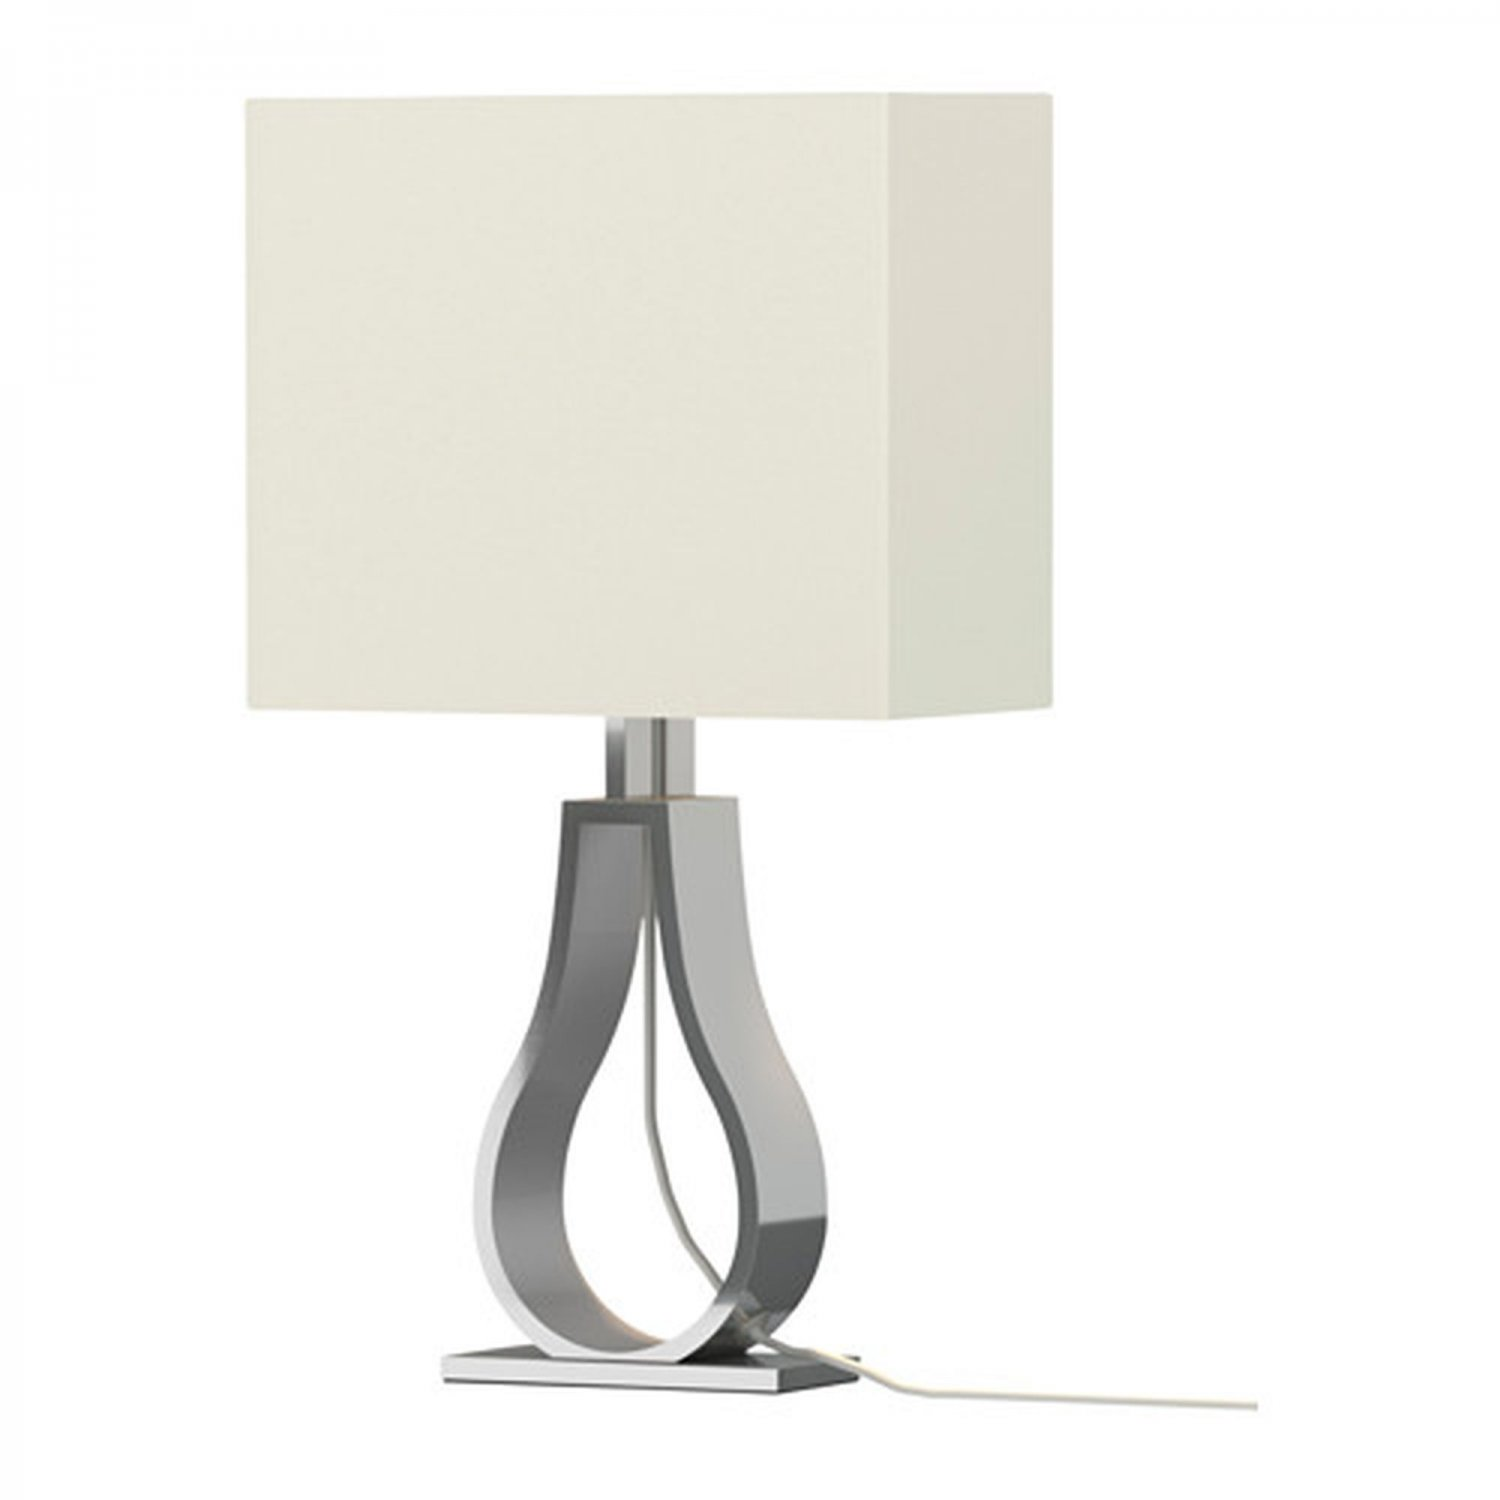 IKEA KLABB Table Lamp Off-White Modern Aluminum Base Architectural Warm Off White